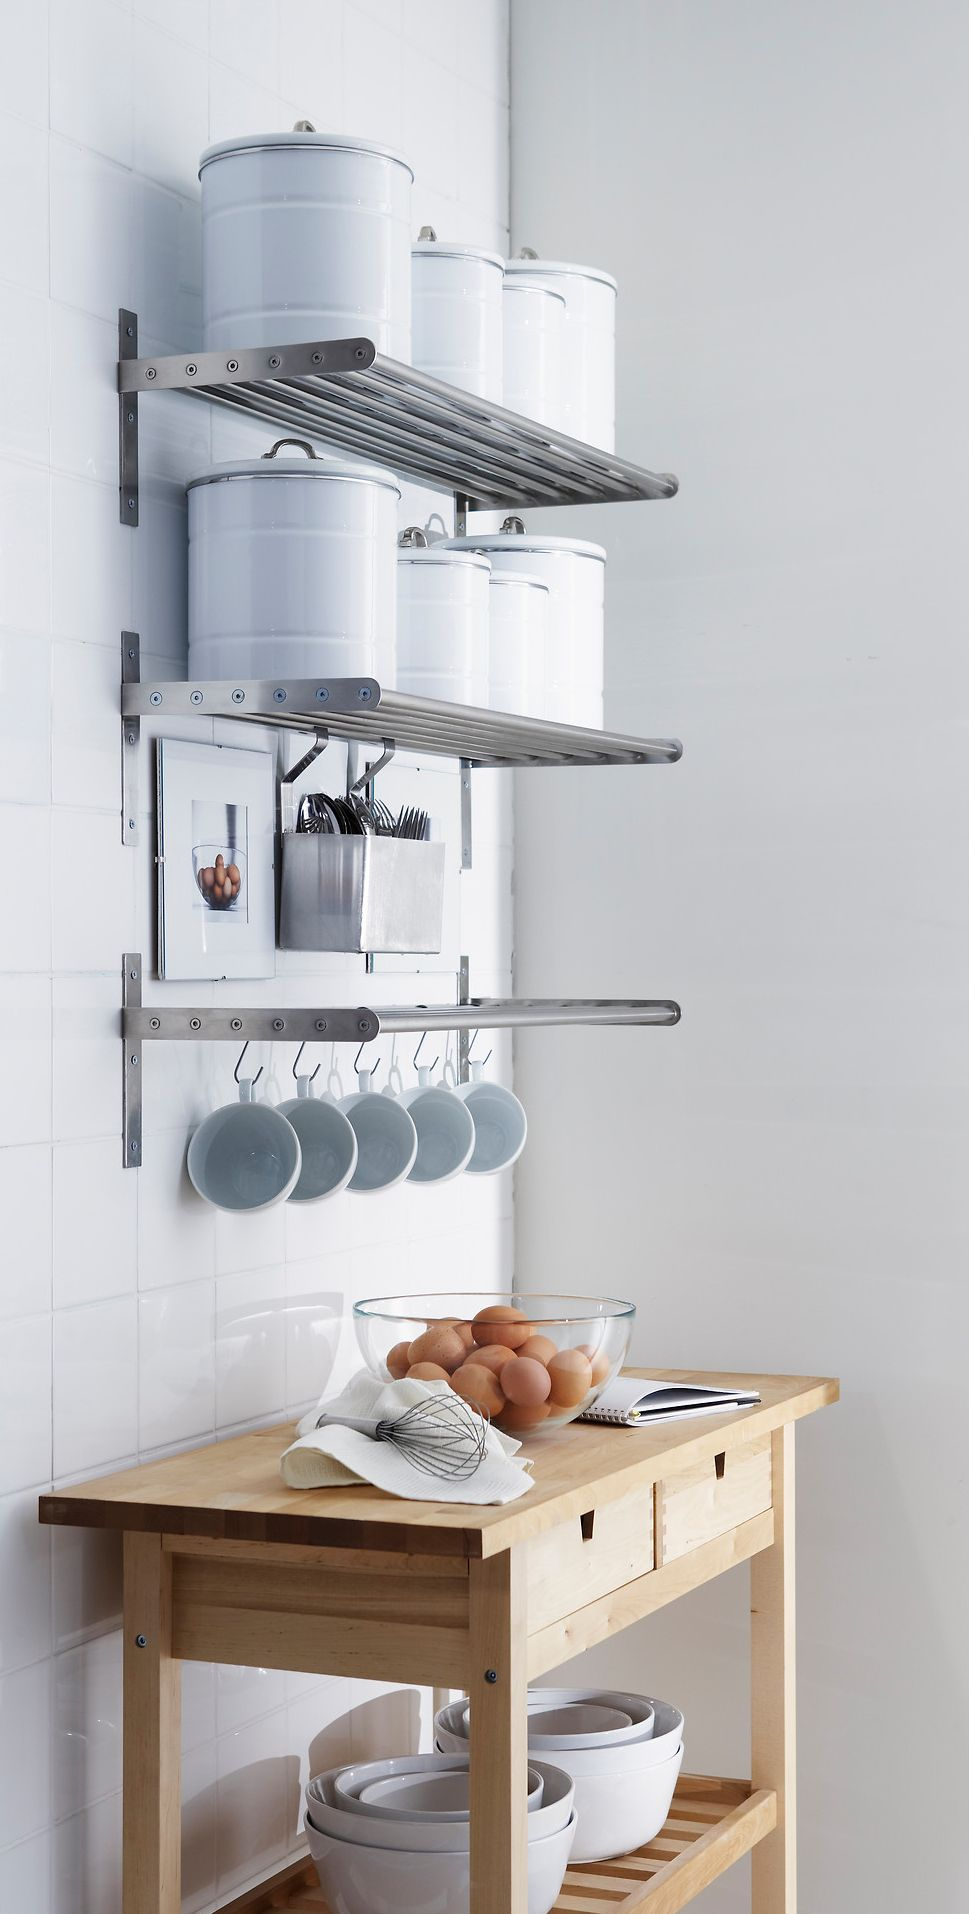 ingenious kitchen organization tips and storage ideas ikea grundtal wall organizer floating shelves for white shelf metal shelving unit nailless ture hangers black mantel espresso